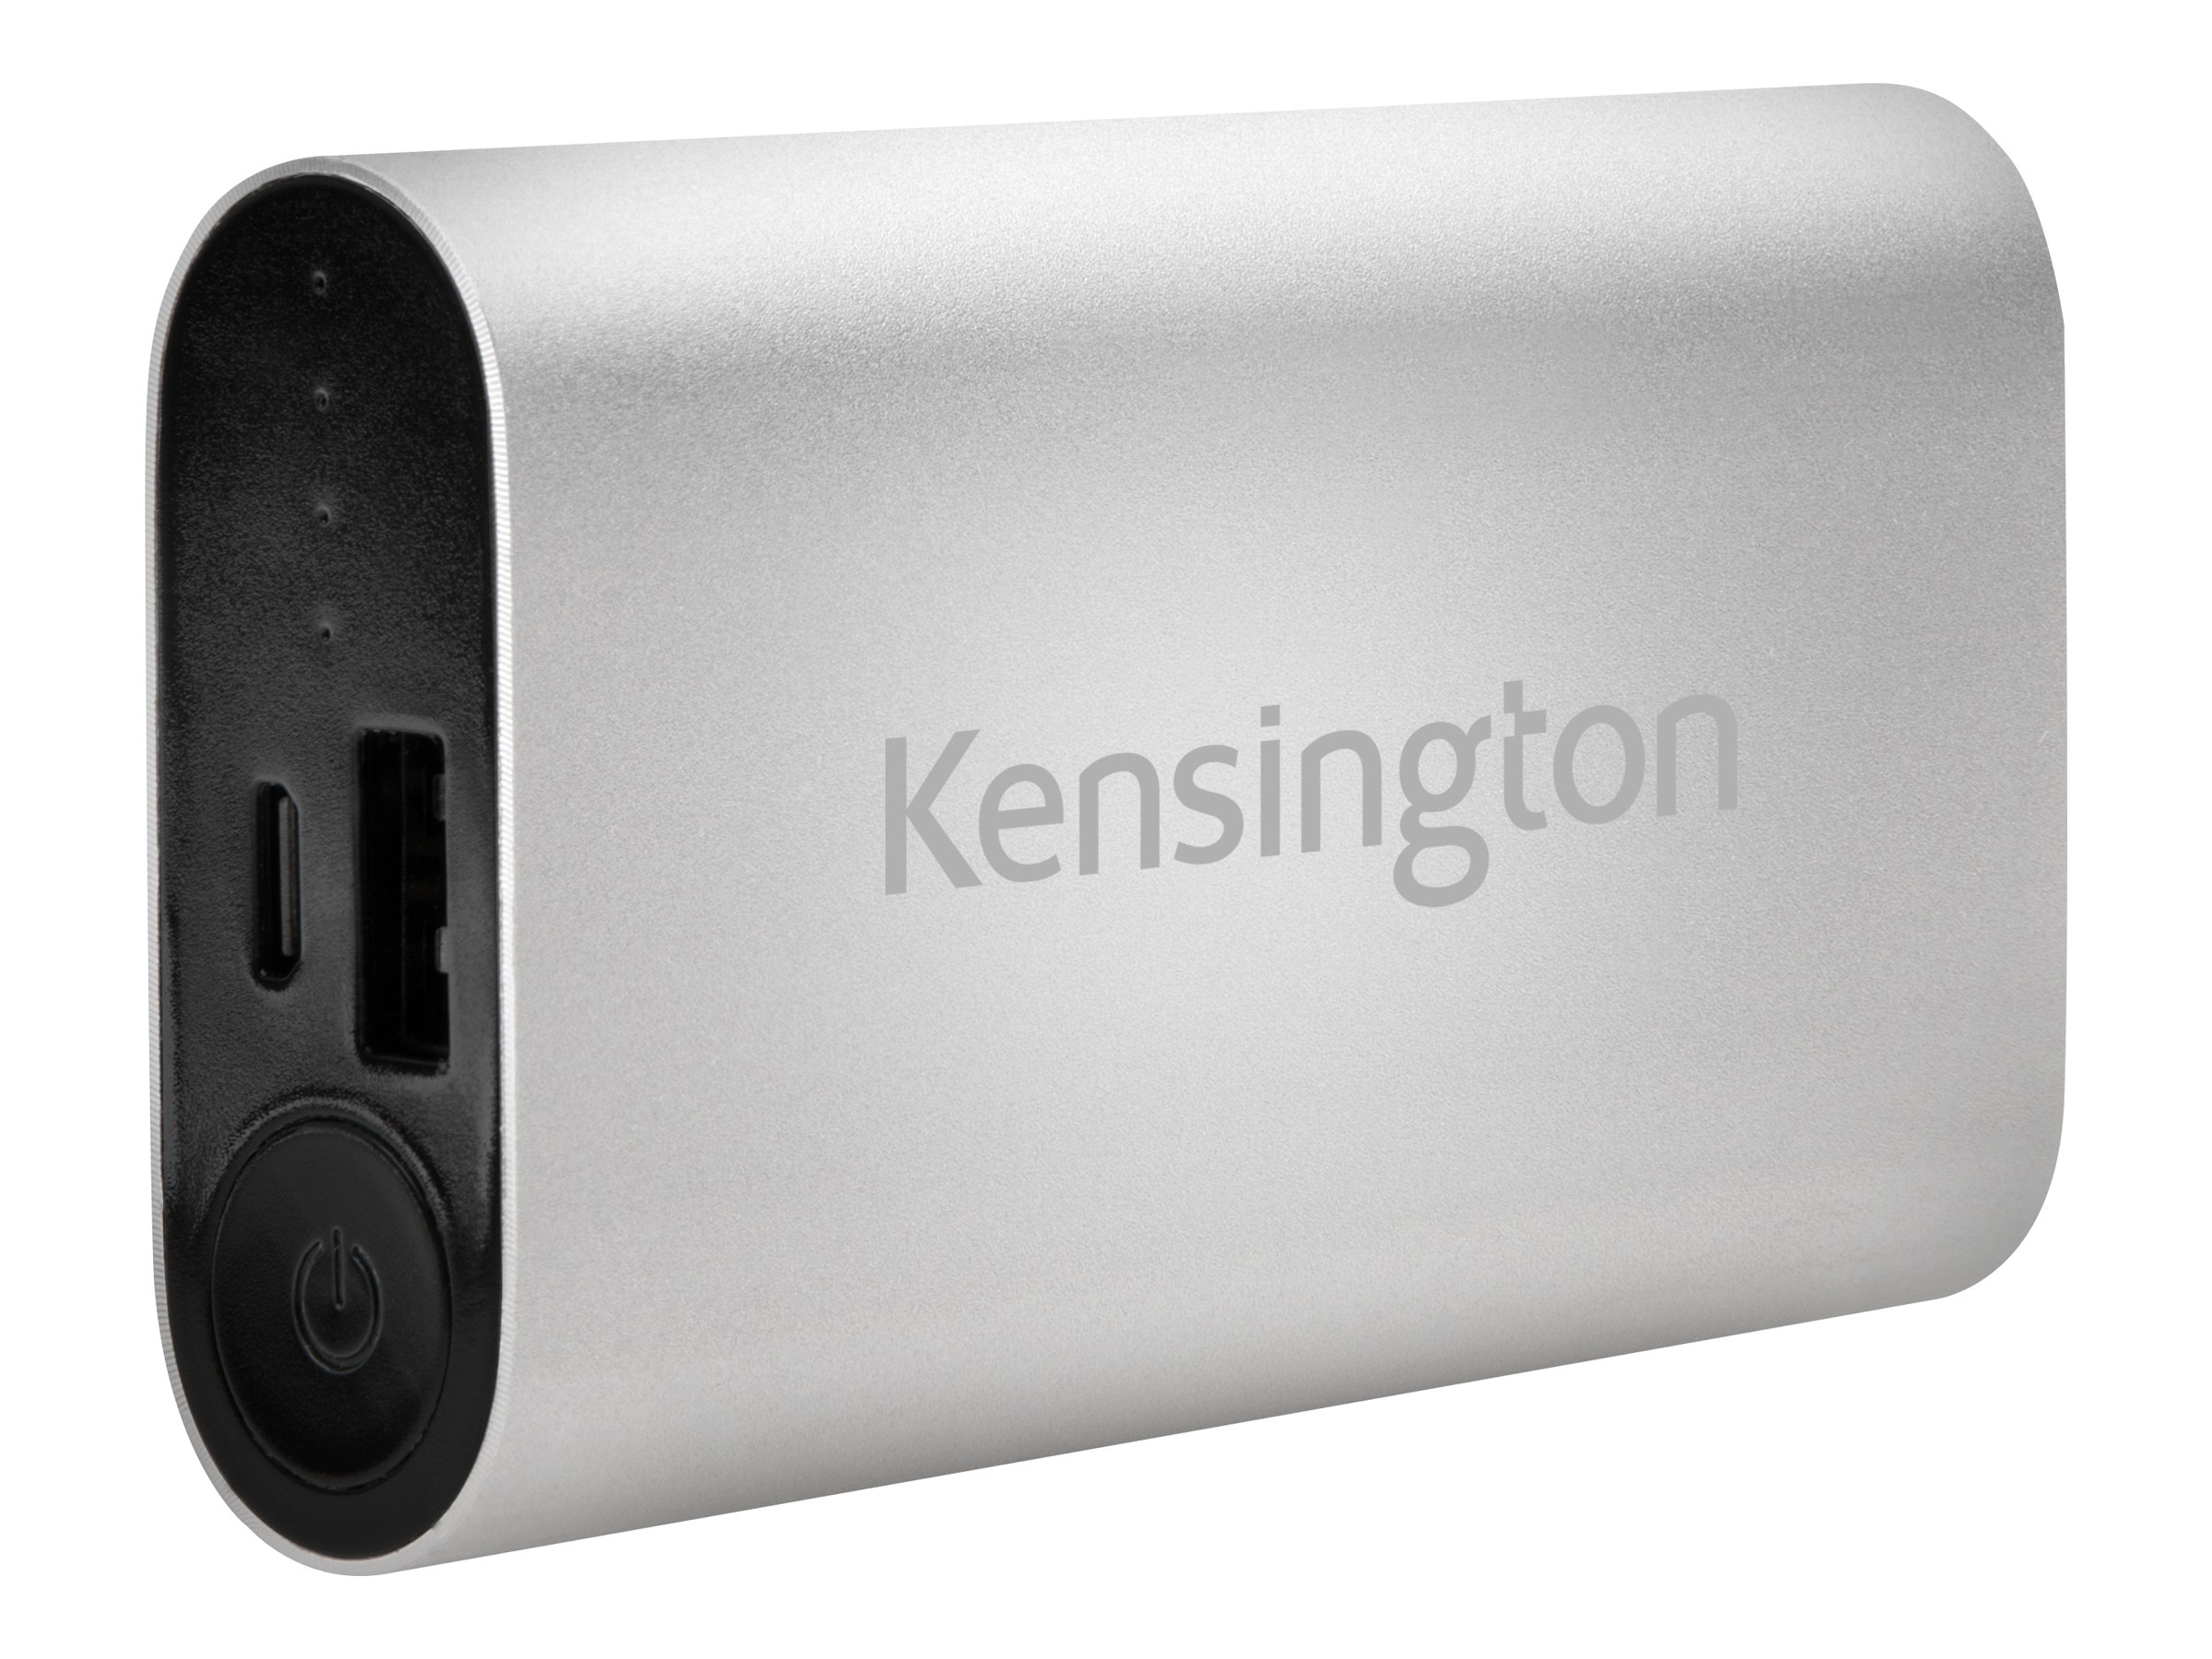 Kensington 5200mAh USB Mobile Charger, Silver, K38220WW, 18605876, Batteries - Other